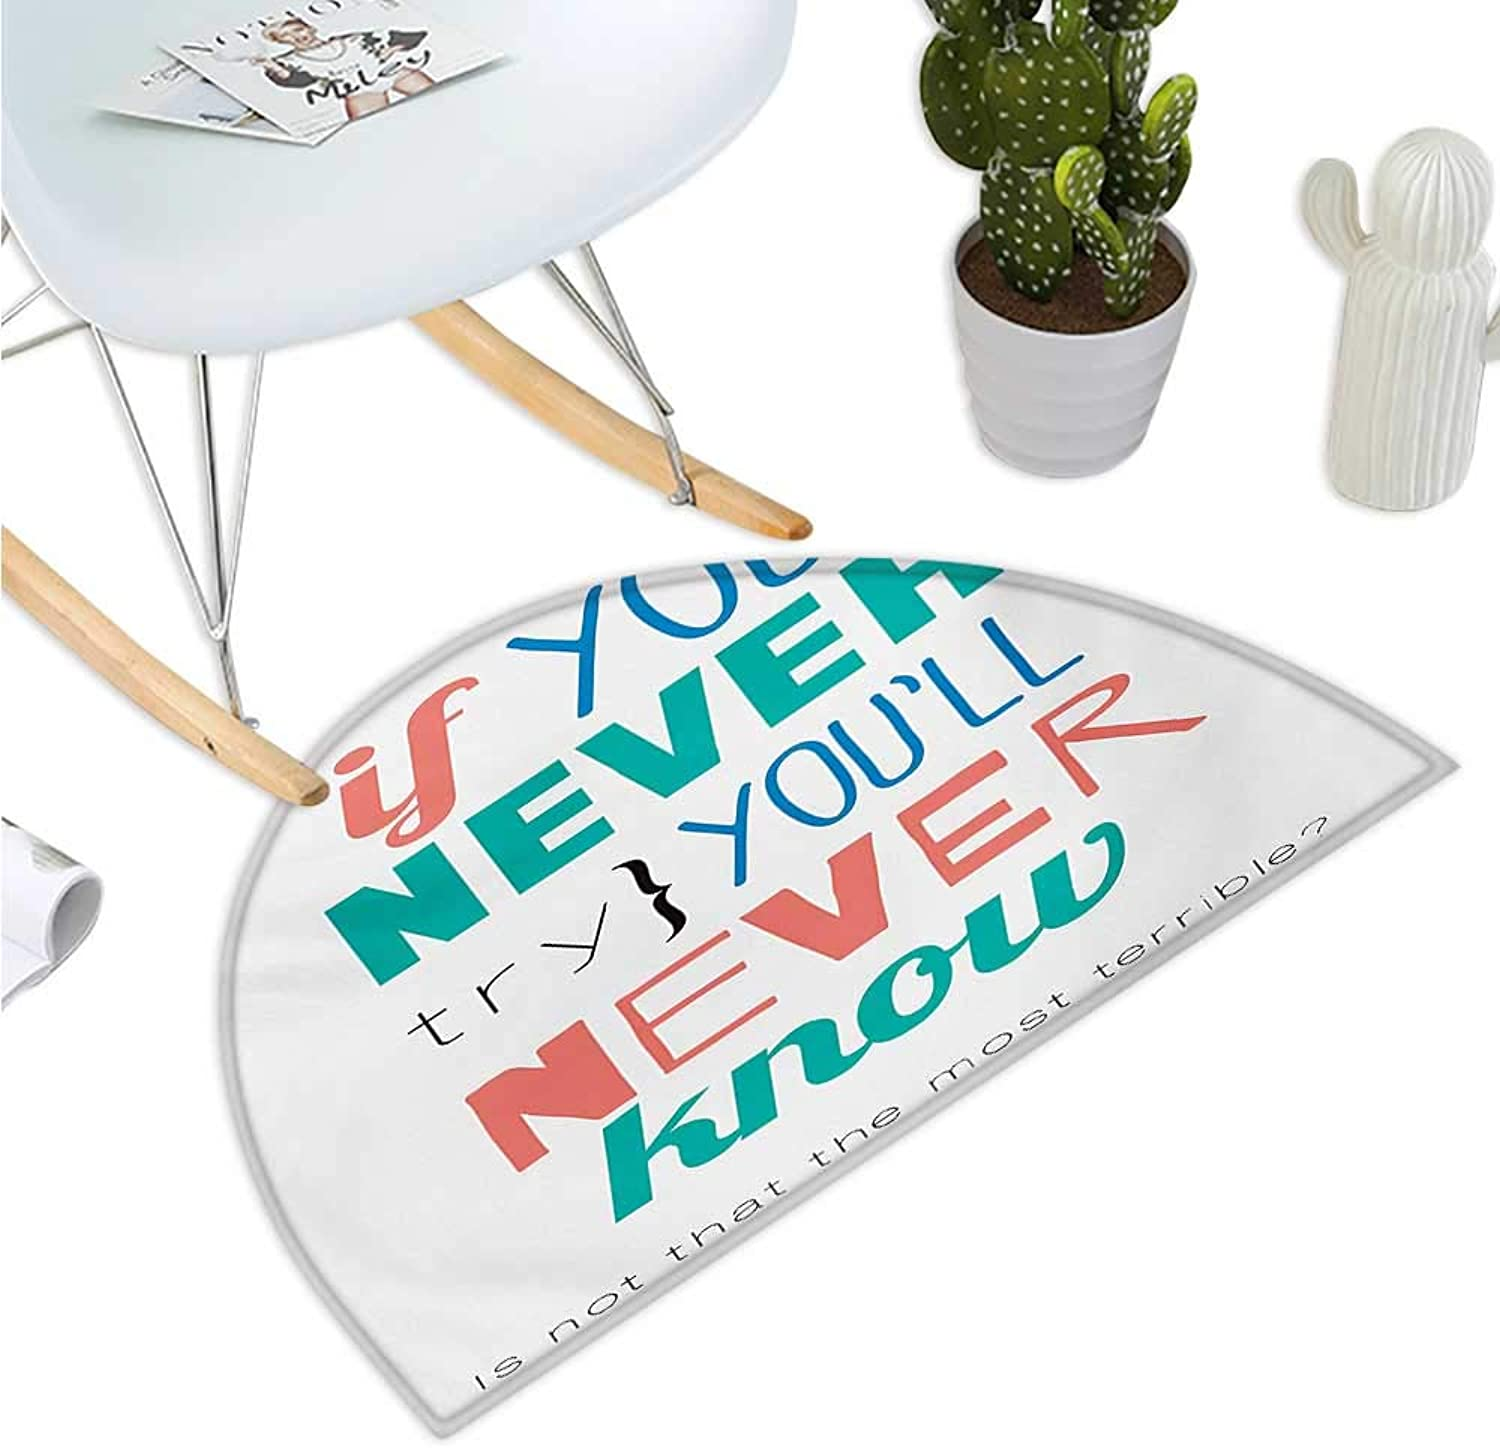 Quotes Semicircular Cushion If You Never Try Youll Never Know Philosophy Inspiration Modern Sign Halfmoon doormats H 39.3  xD 59  Coral bluee Jade Green